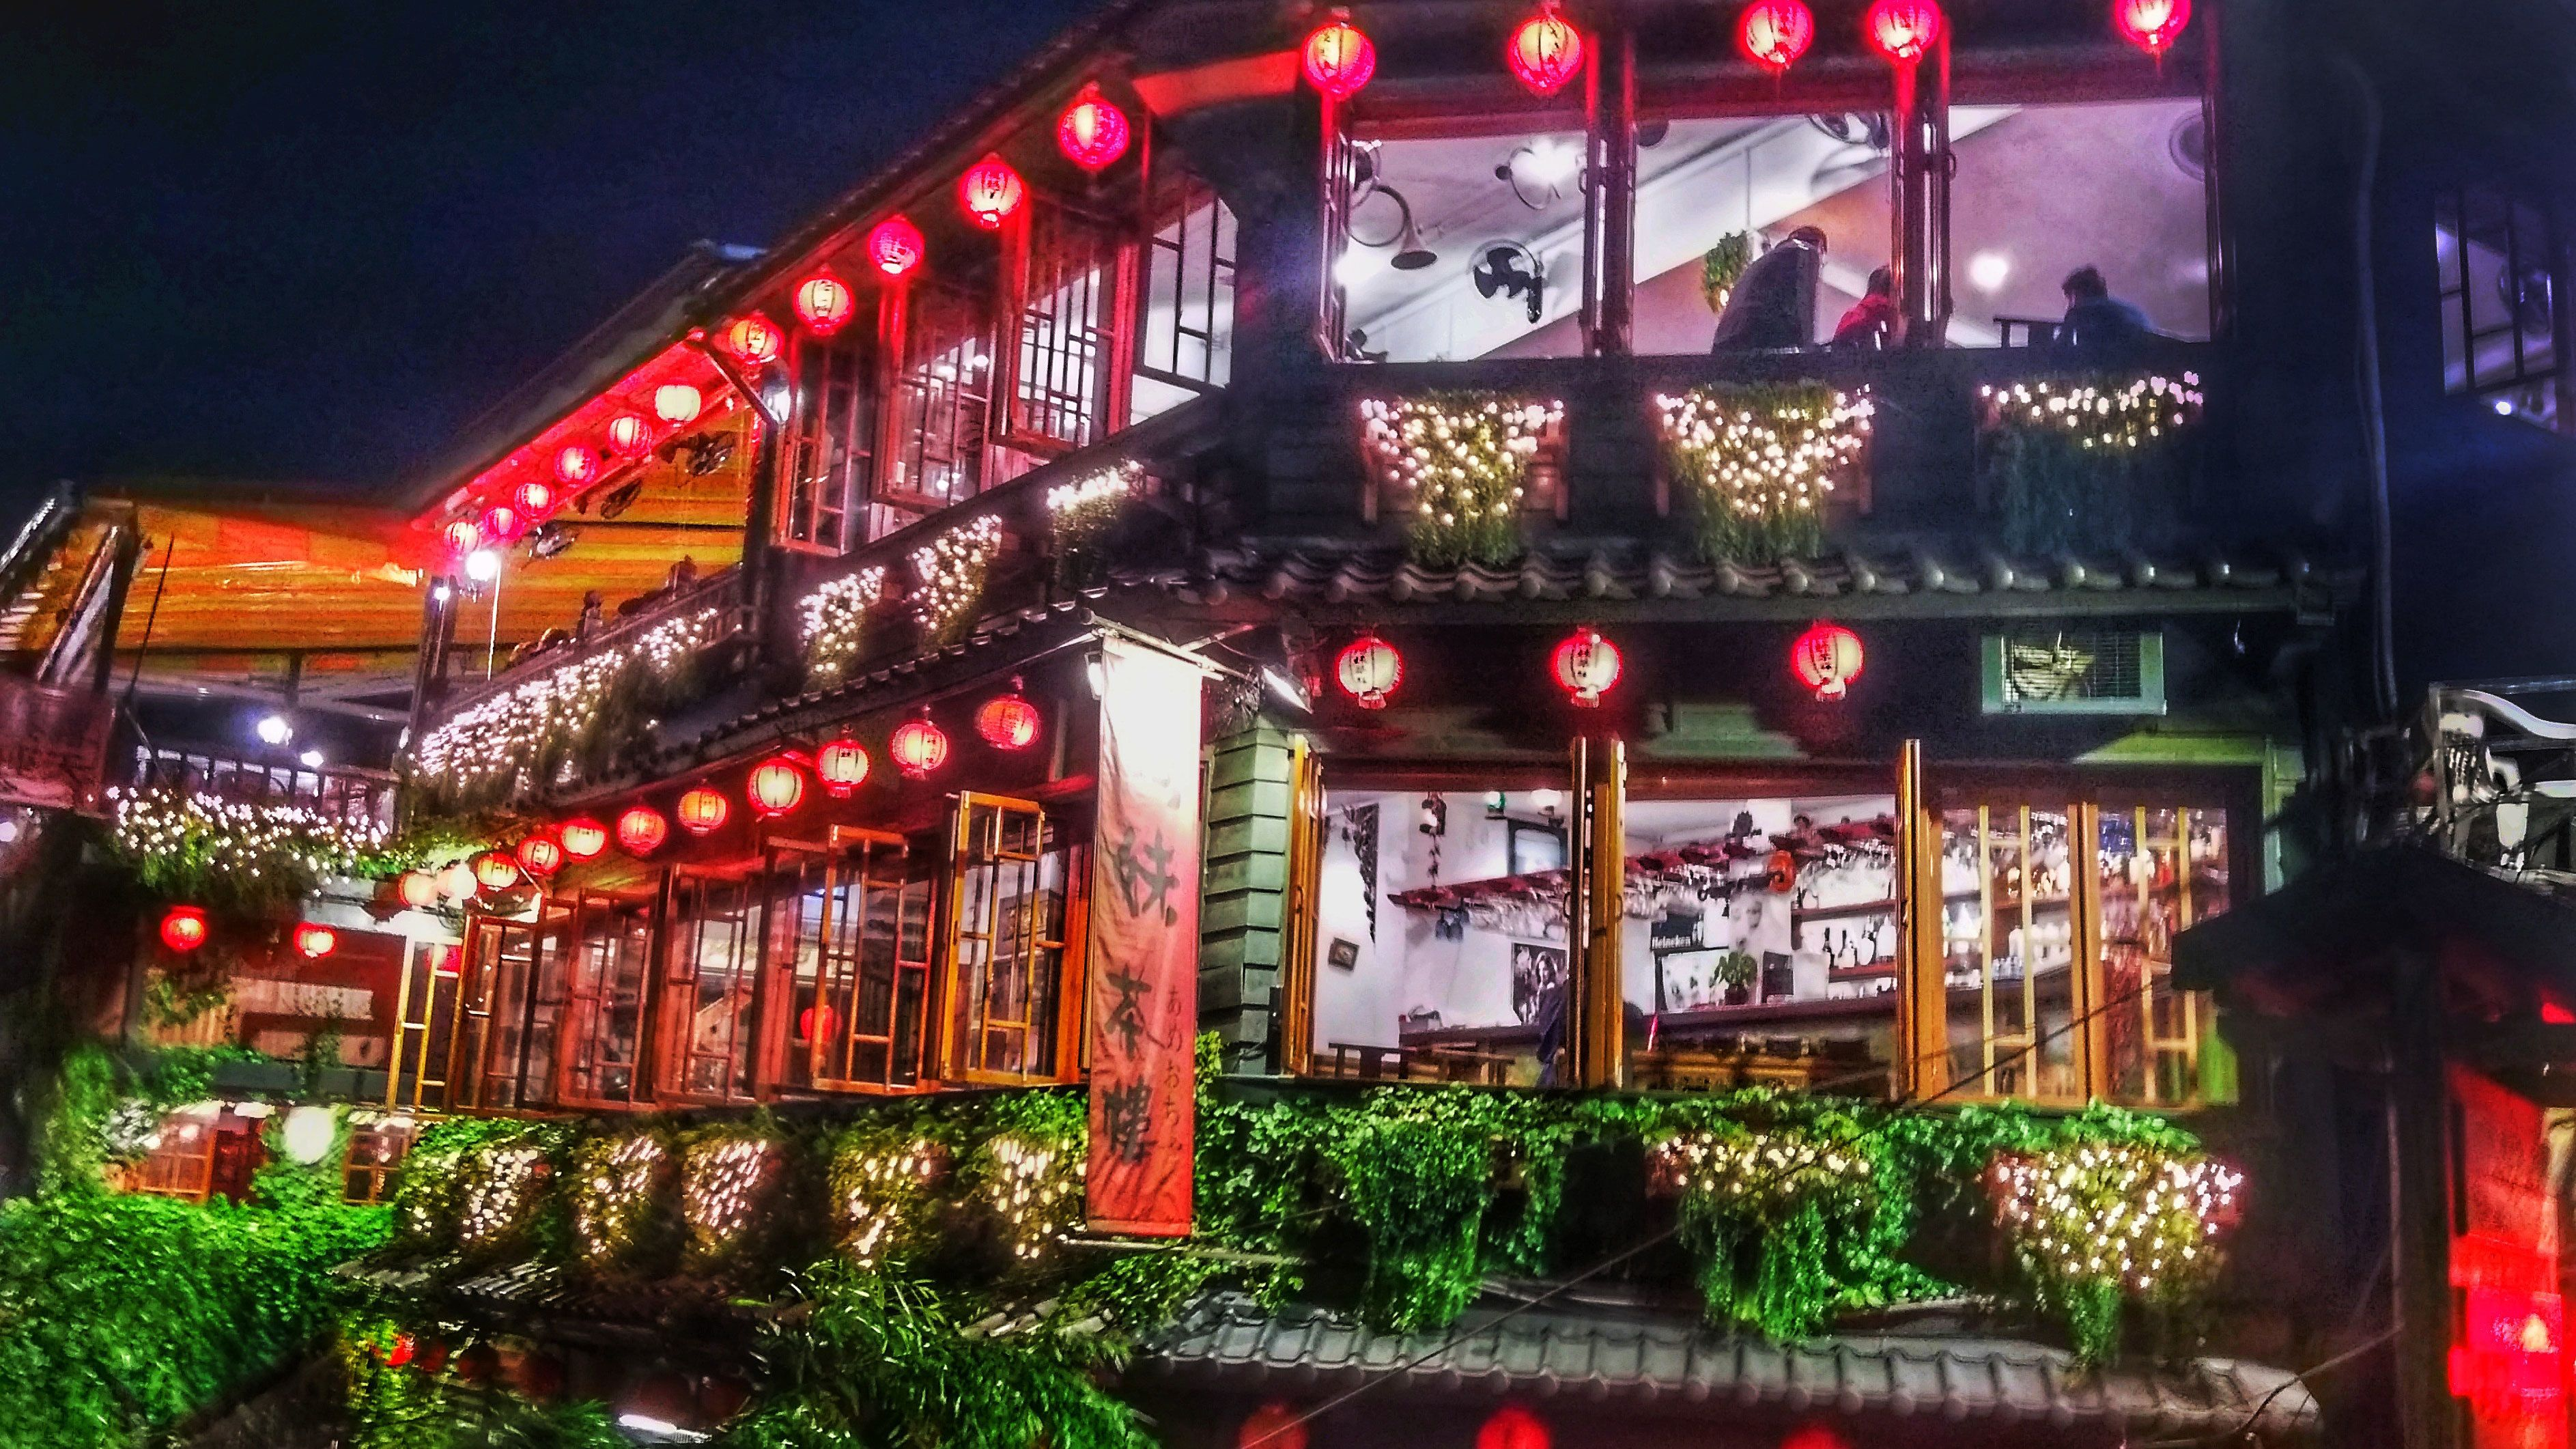 Building with lanterns lit on the outside in Jiufen at night